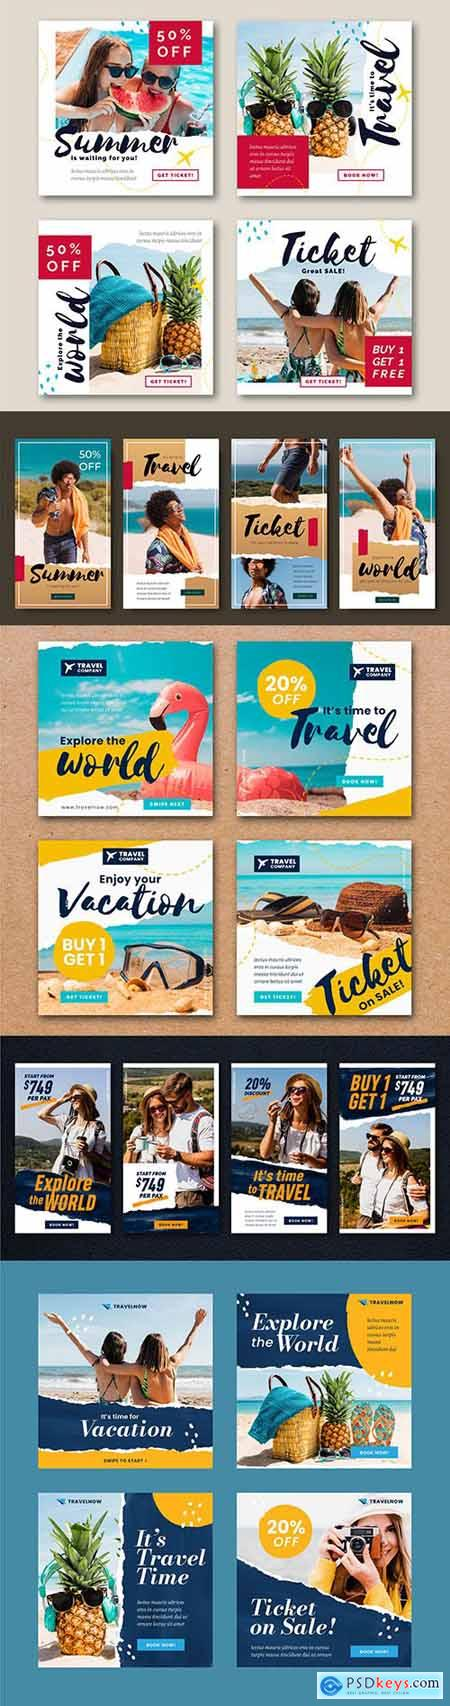 Travel story and travel sale instagram post template